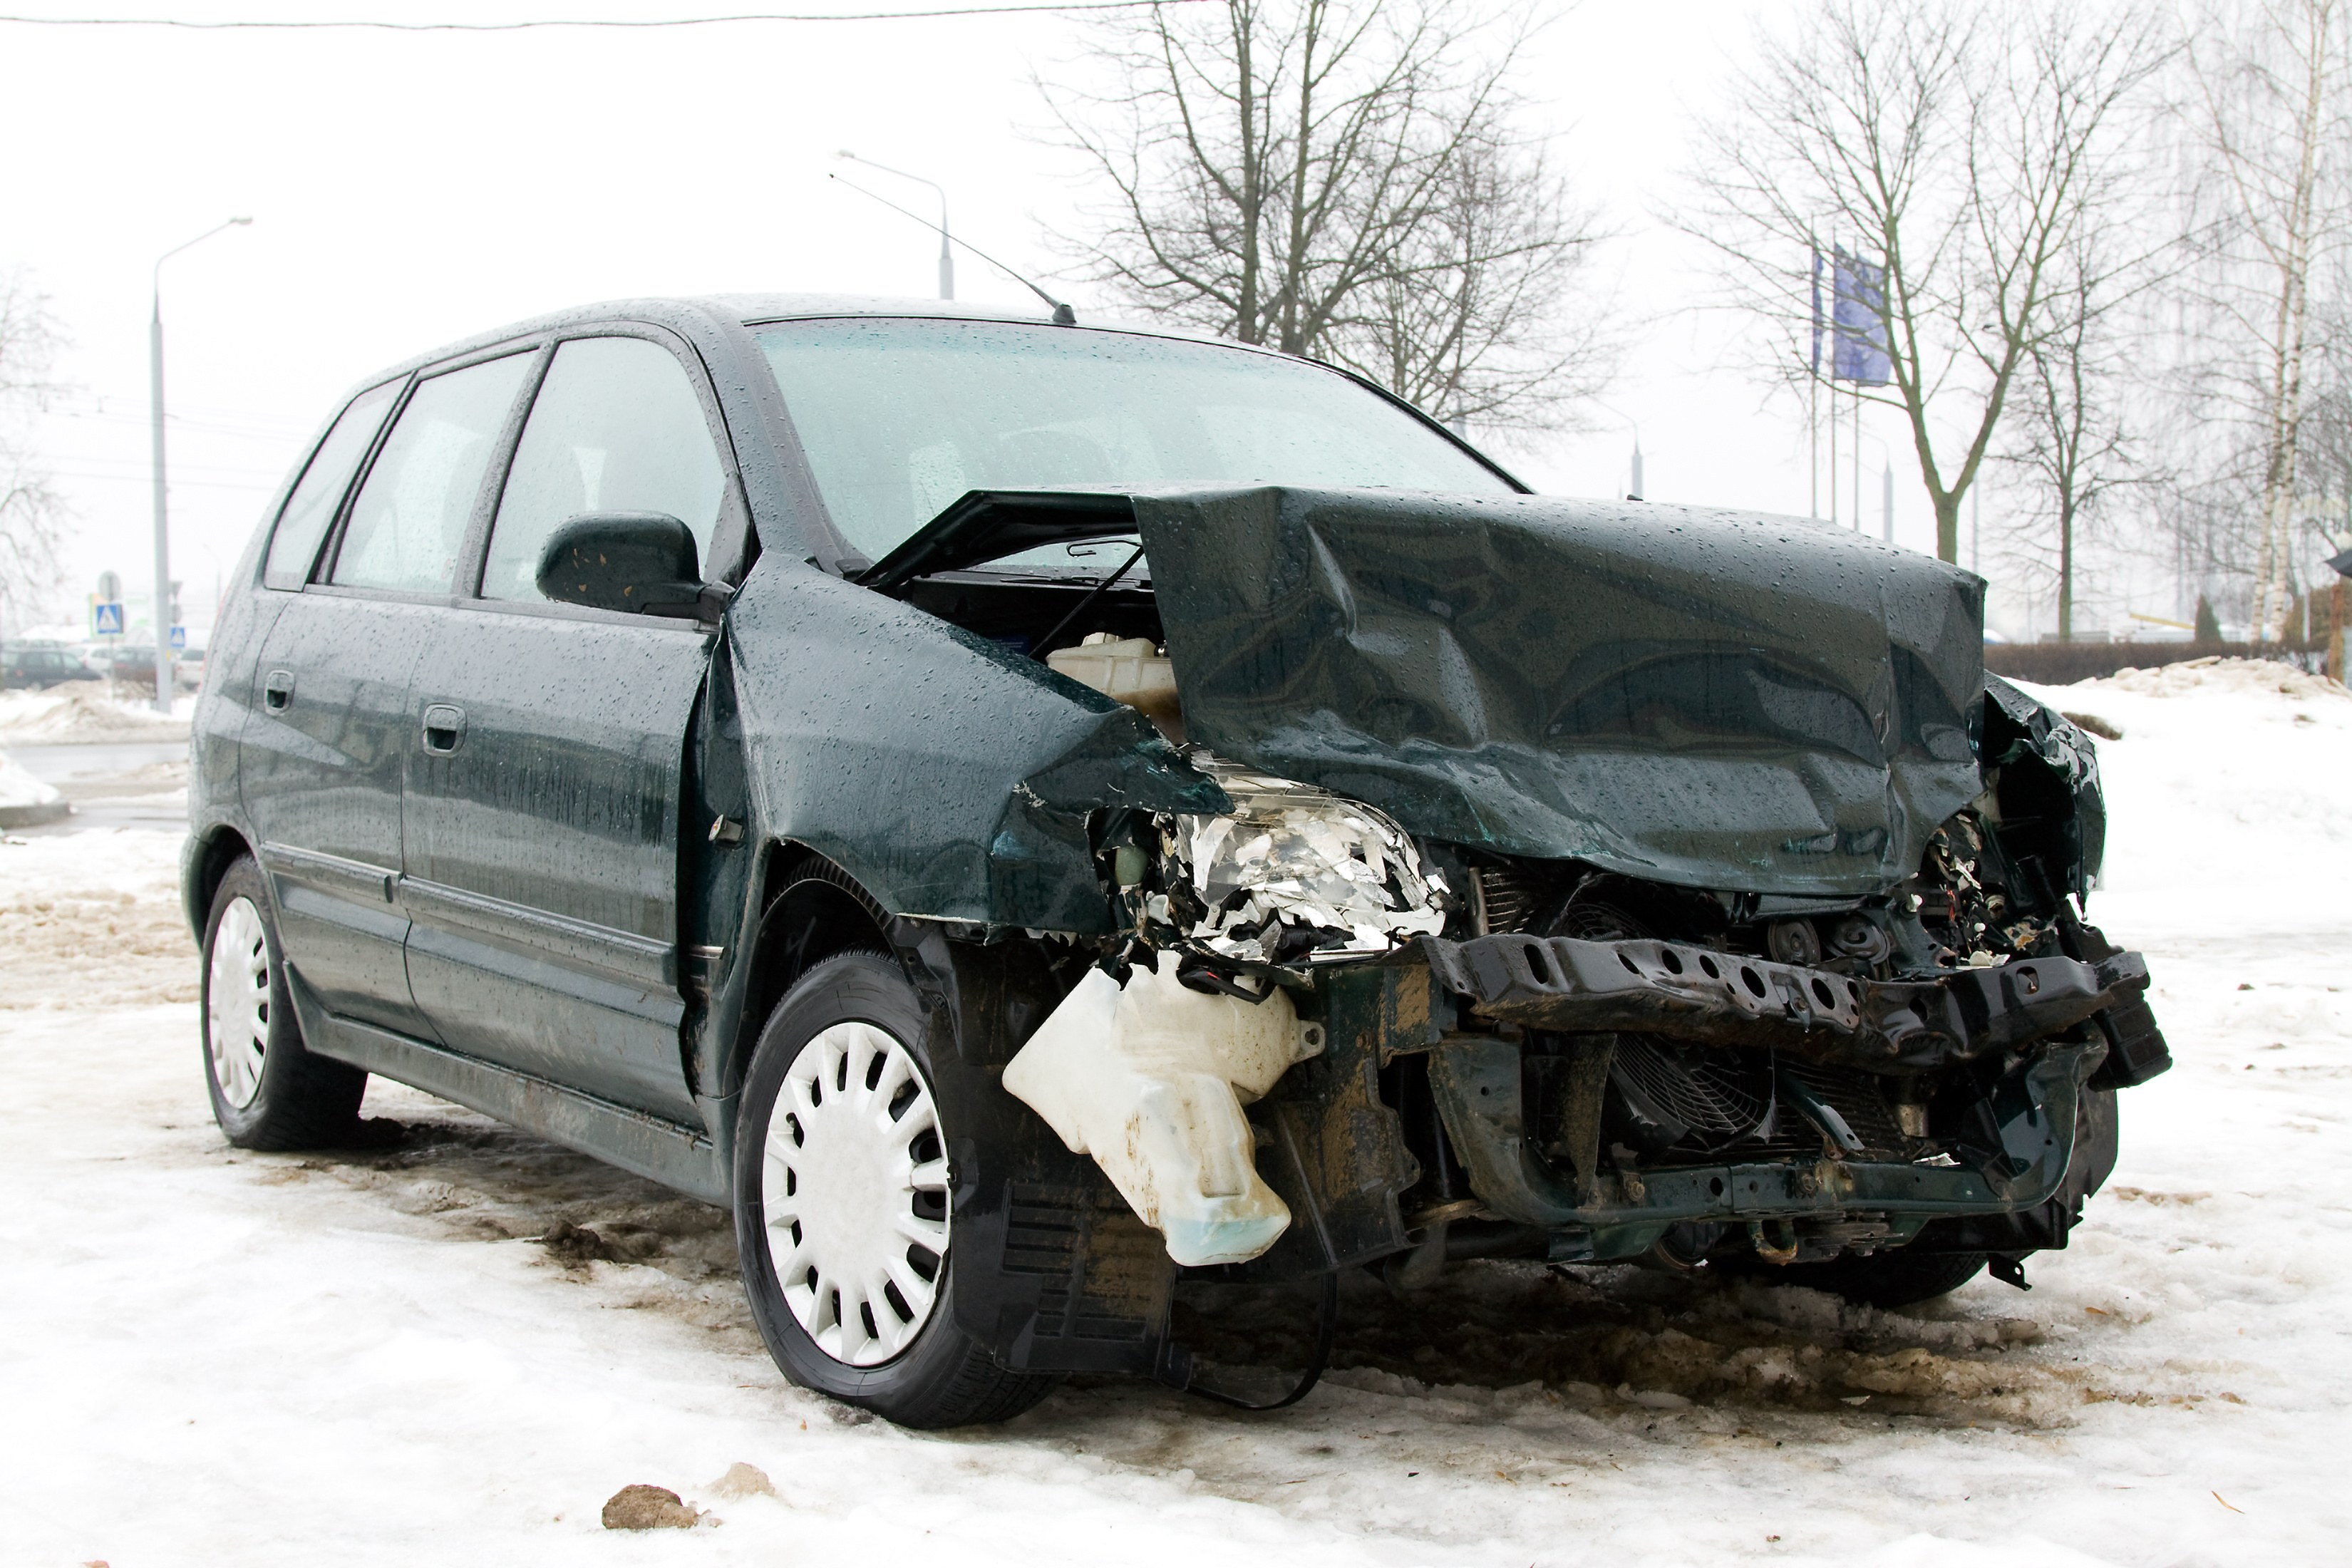 How long will it take for my car accident claim to settle